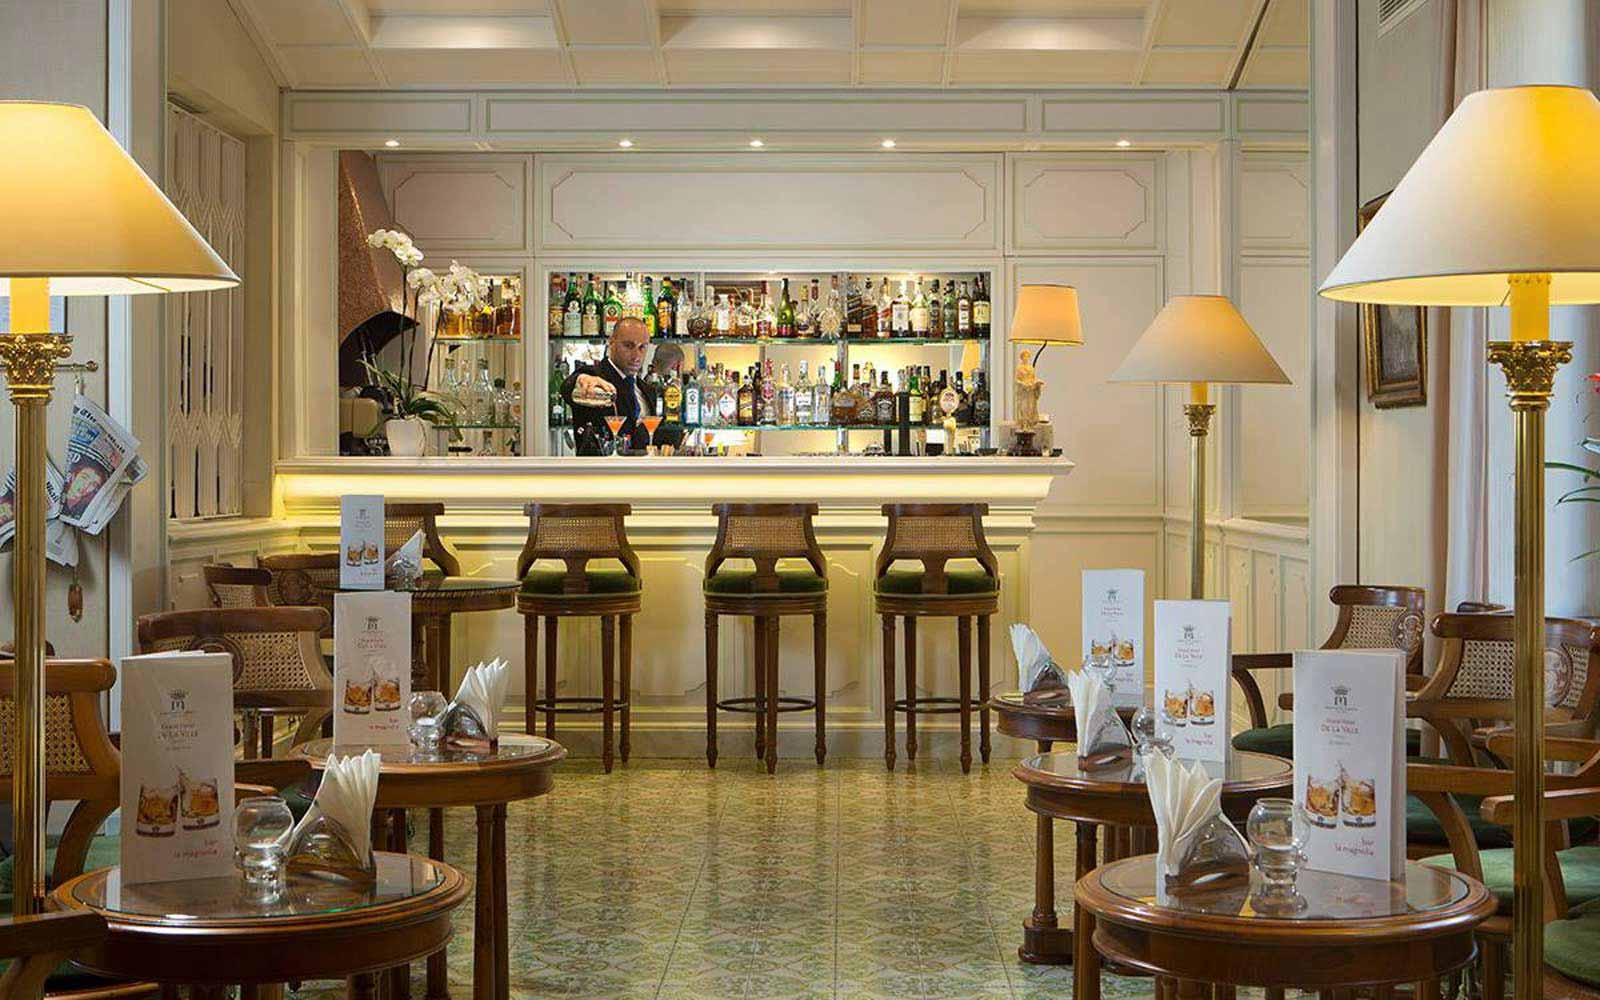 La Magnolia bar at Grand Hotel de la Ville